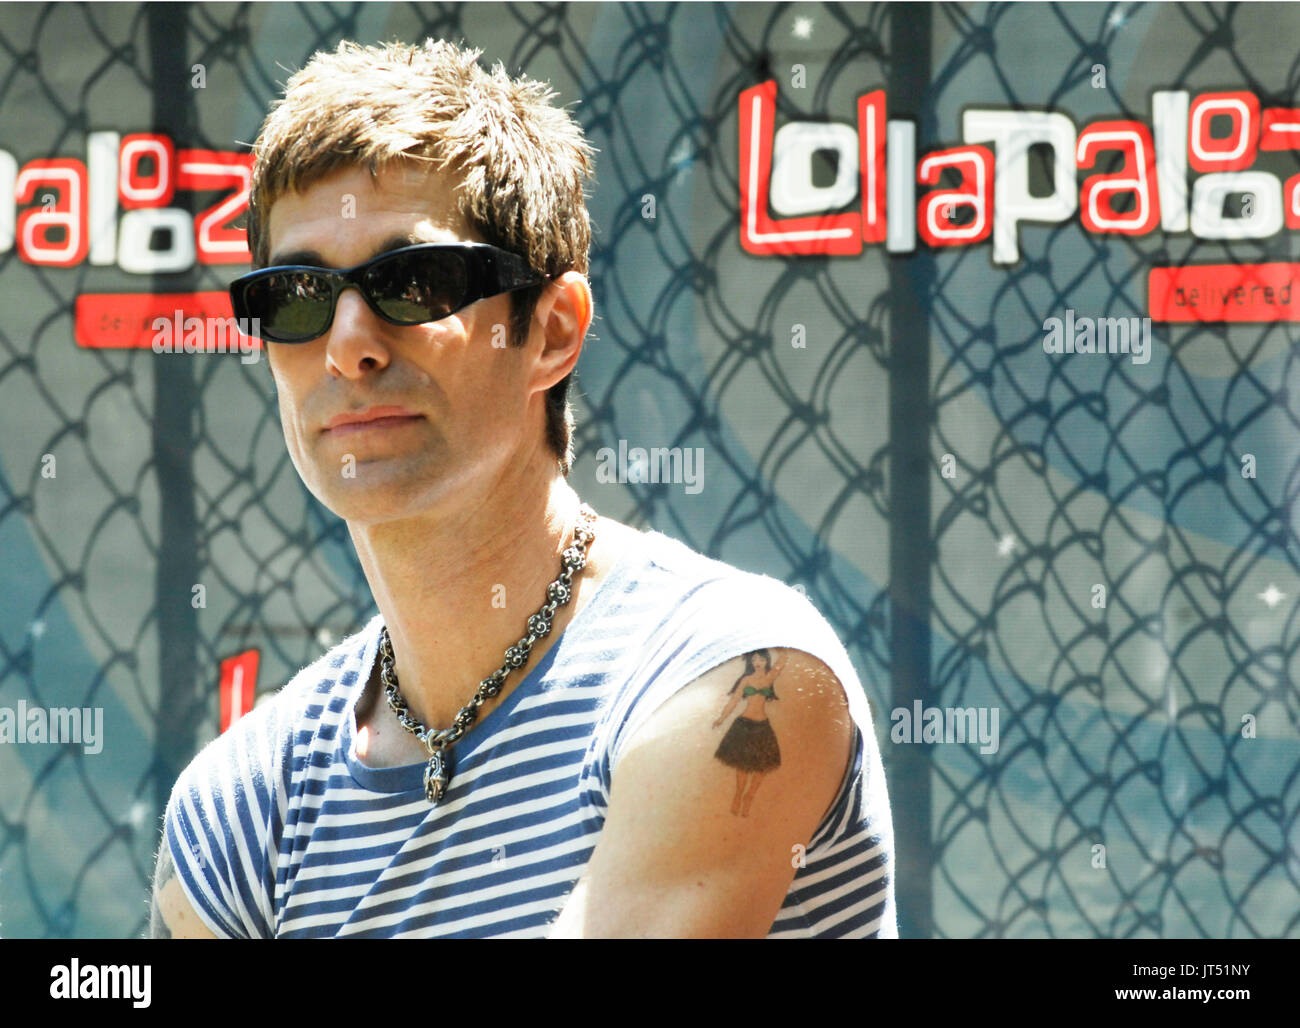 Perry Farrell his press conference 2008 Lollapalooza Music Festival Grant Park Chicago. - Stock Image